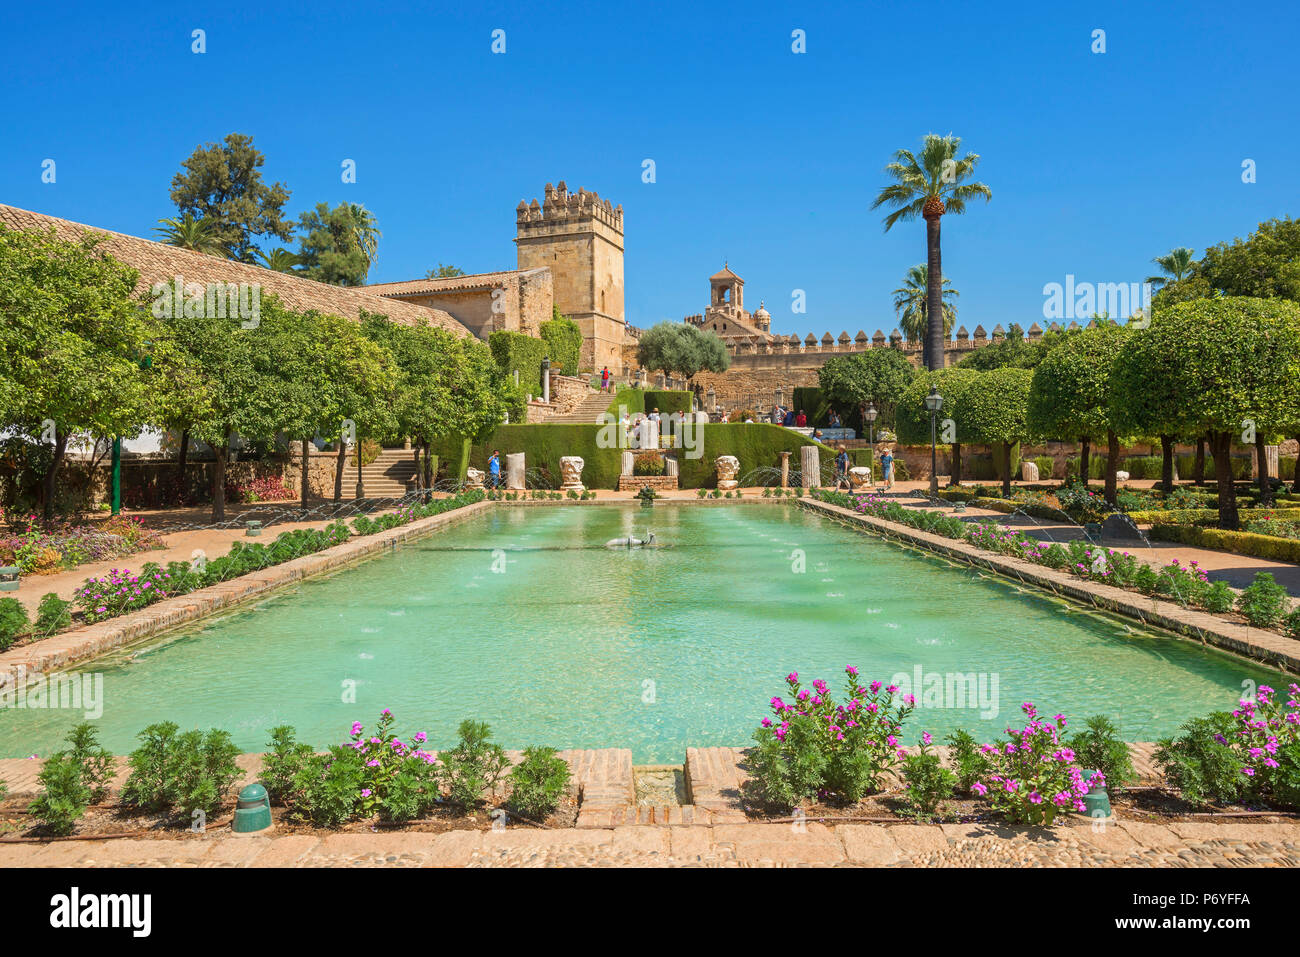 Gardens of the Alcazar of the Crhistian Kings (Alcazar de los Reyes Cristianos), Cordoba, Andalusia, Spain Stock Photo